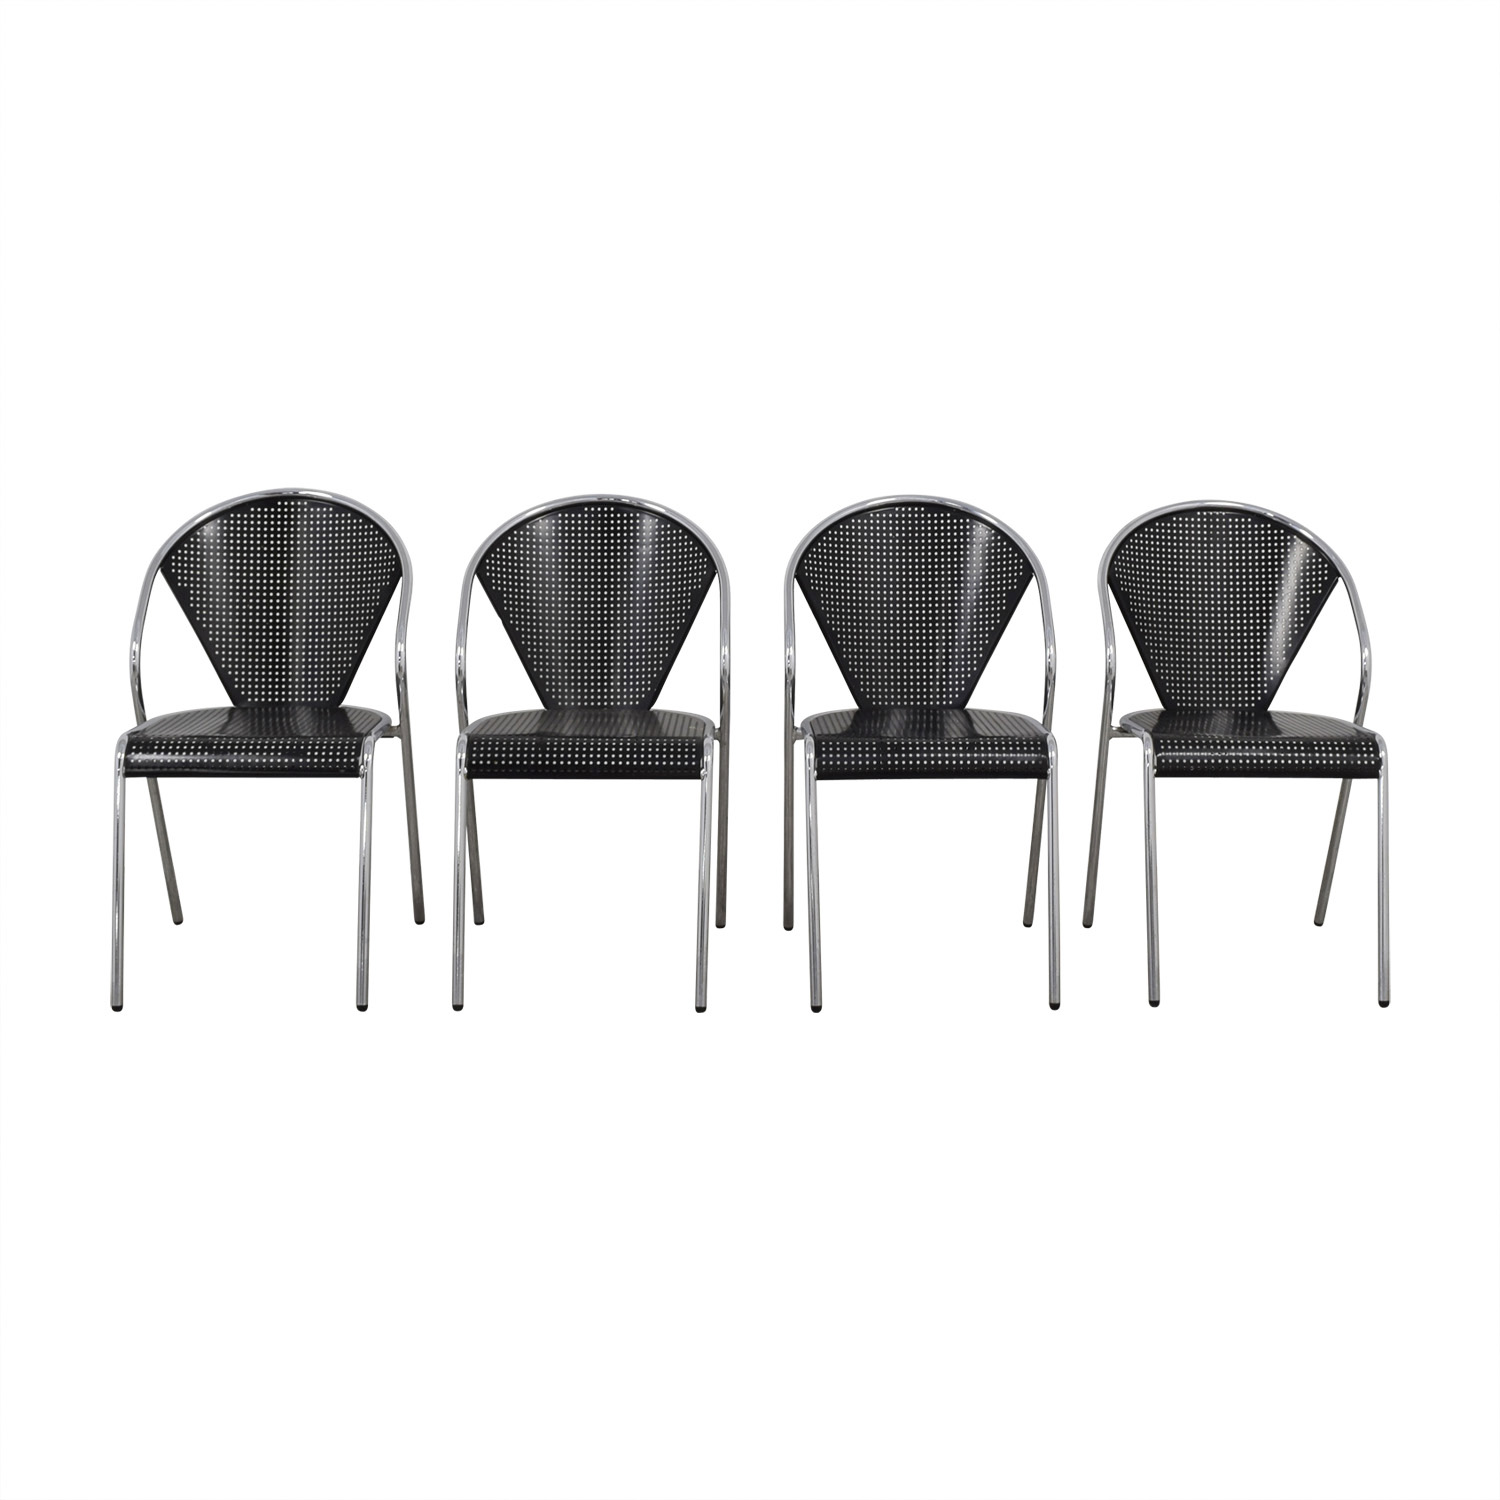 Manhattan Home Design Protech Black Steel Stacking Chairs / Dining Chairs